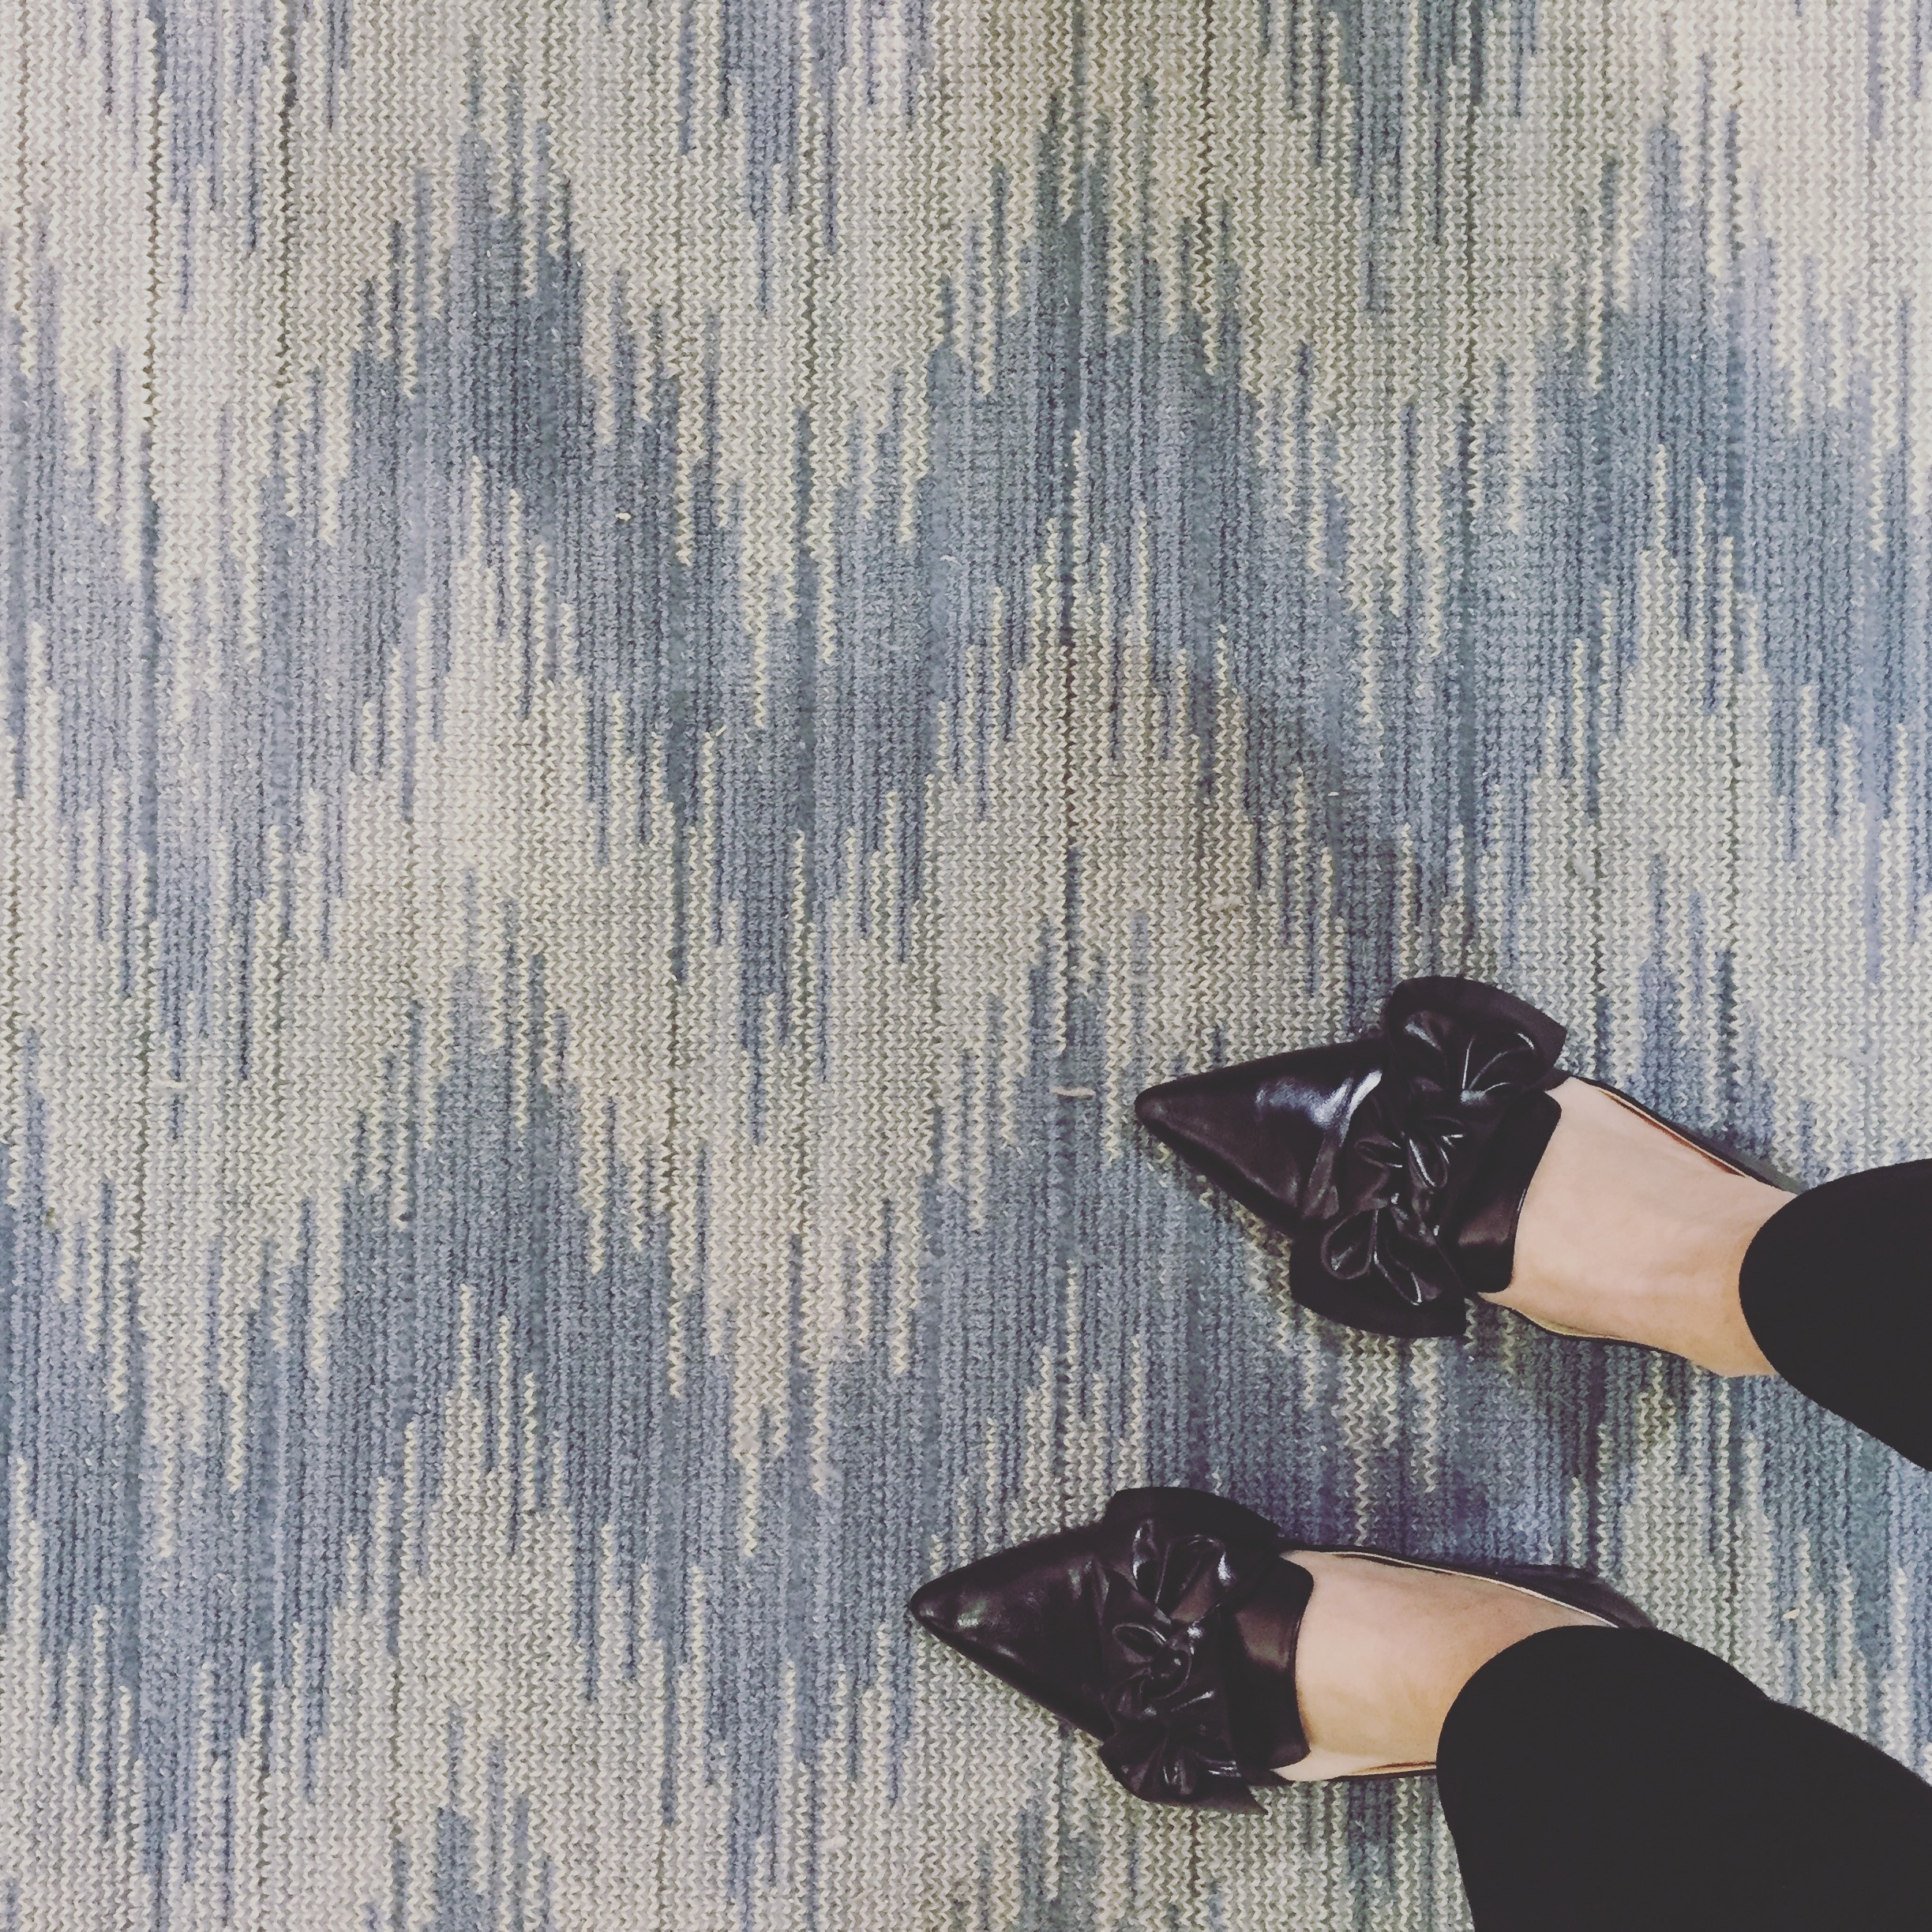 Karastan  Patola  carpet at KBIS 2017, Orlando